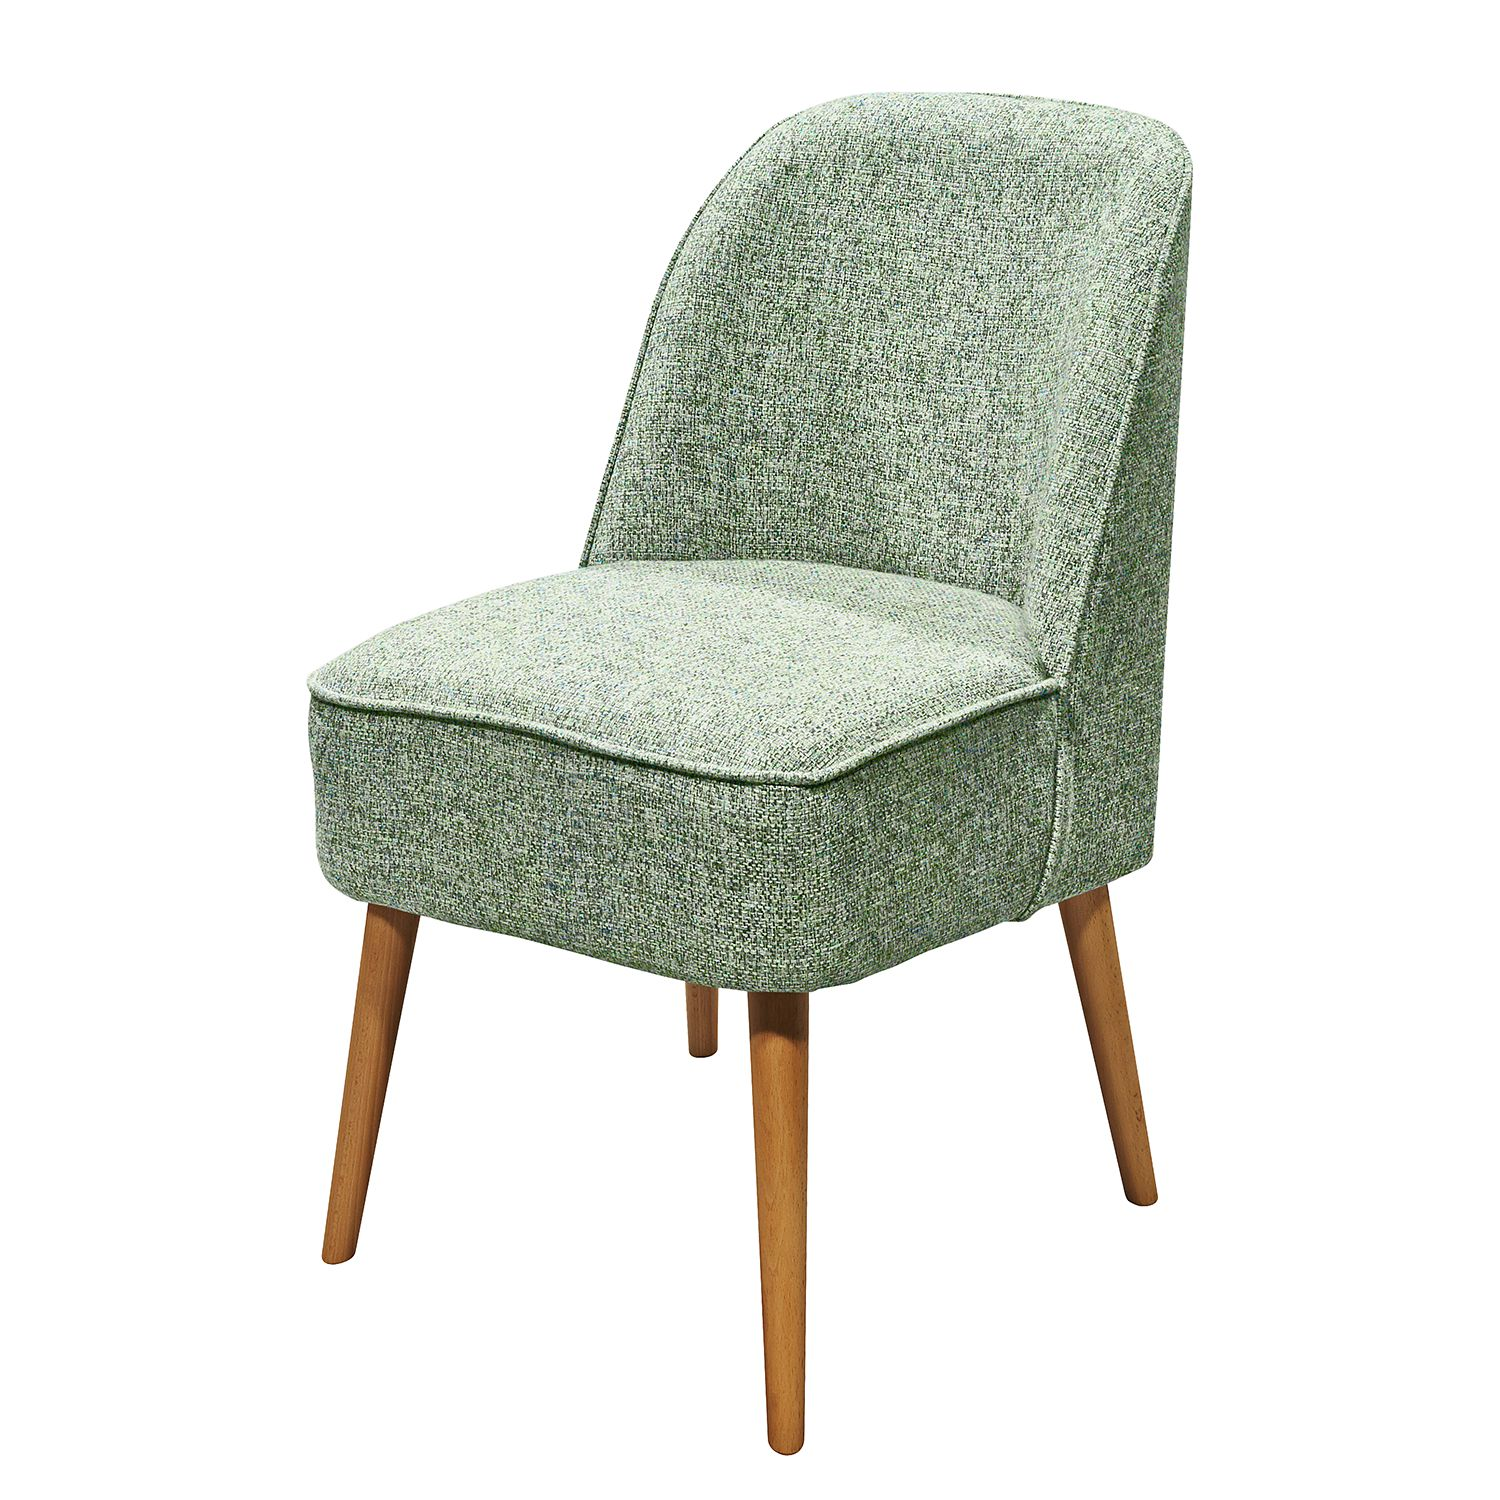 Fauteuil Capain - Tissu - Menthe, mooved